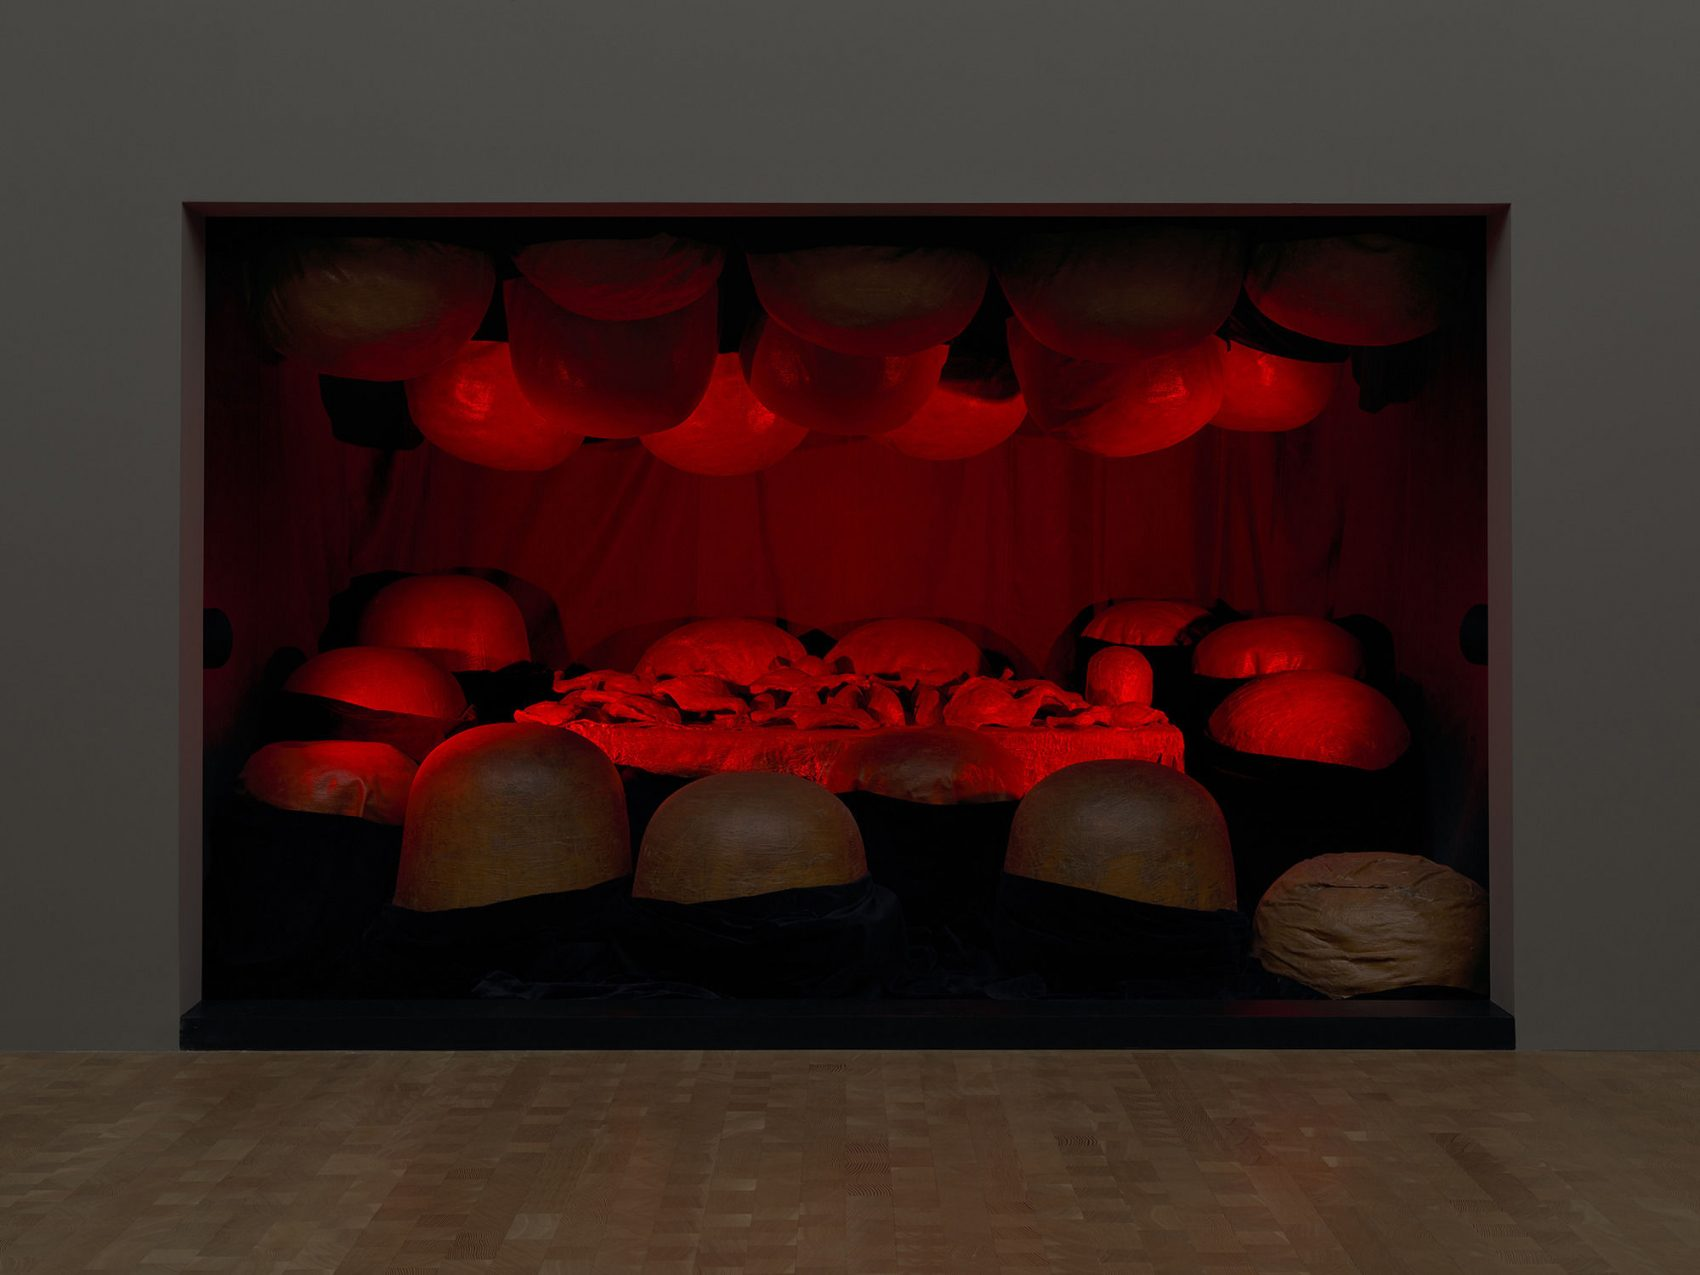 Louise Bourgeois – Freud's daughter